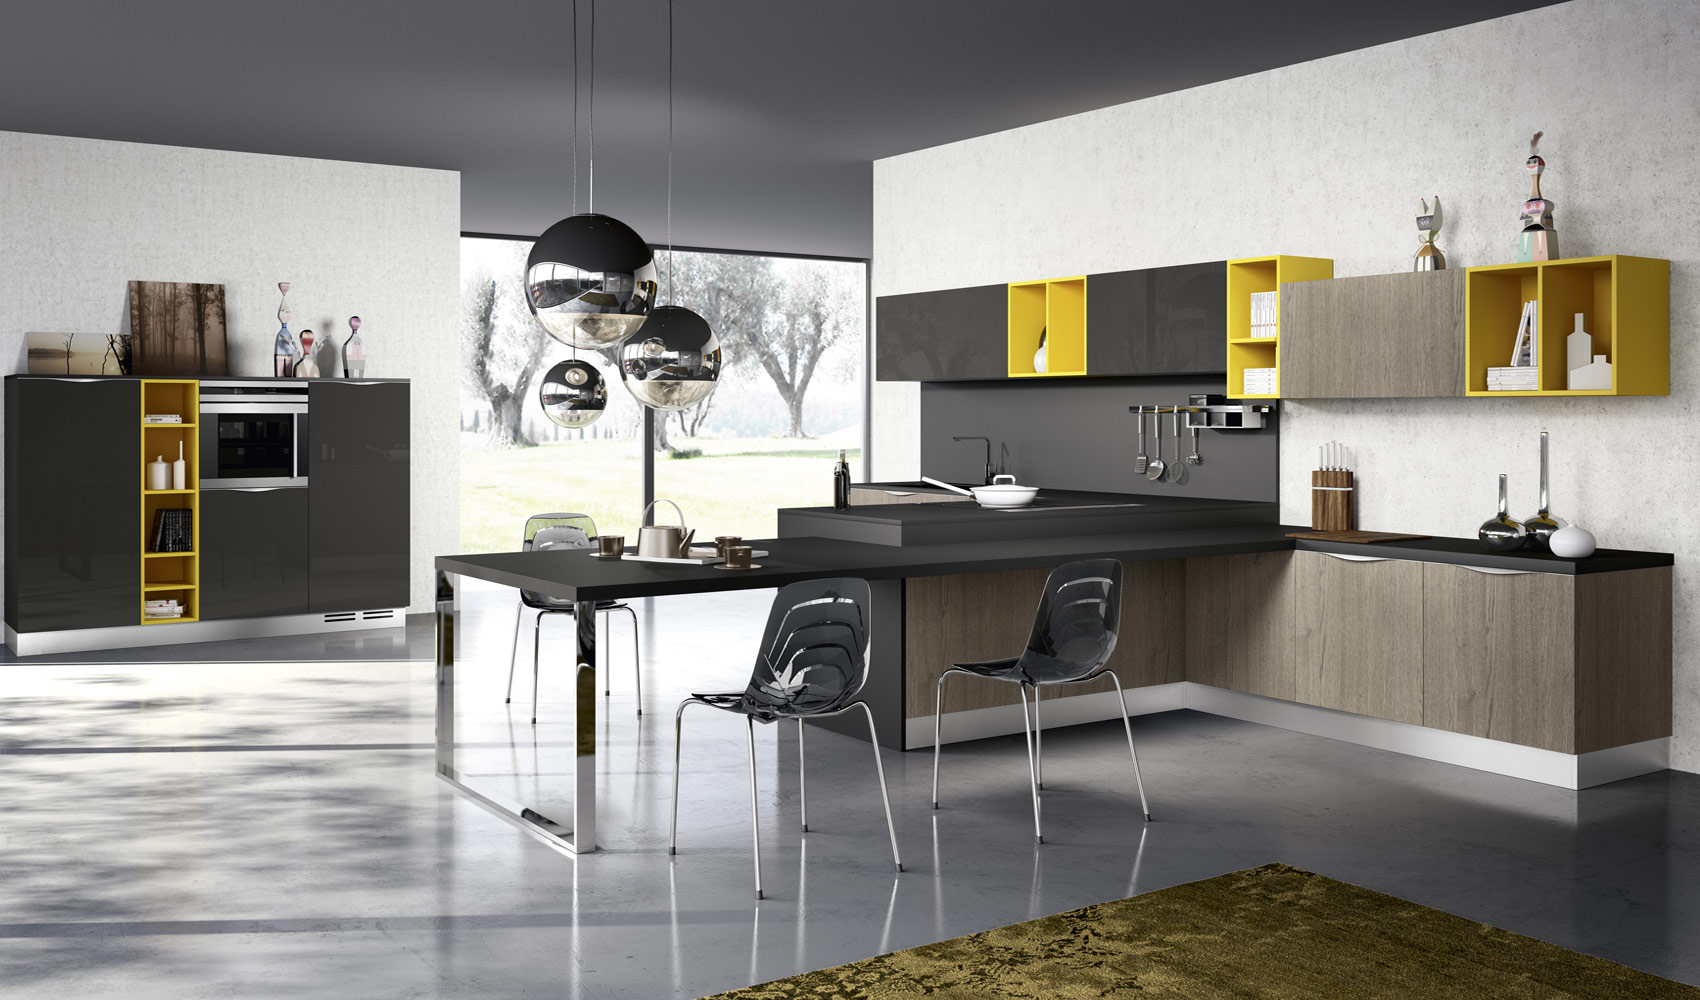 Suitable to apply modern kitchen designs combined with for Modern kitchen looks